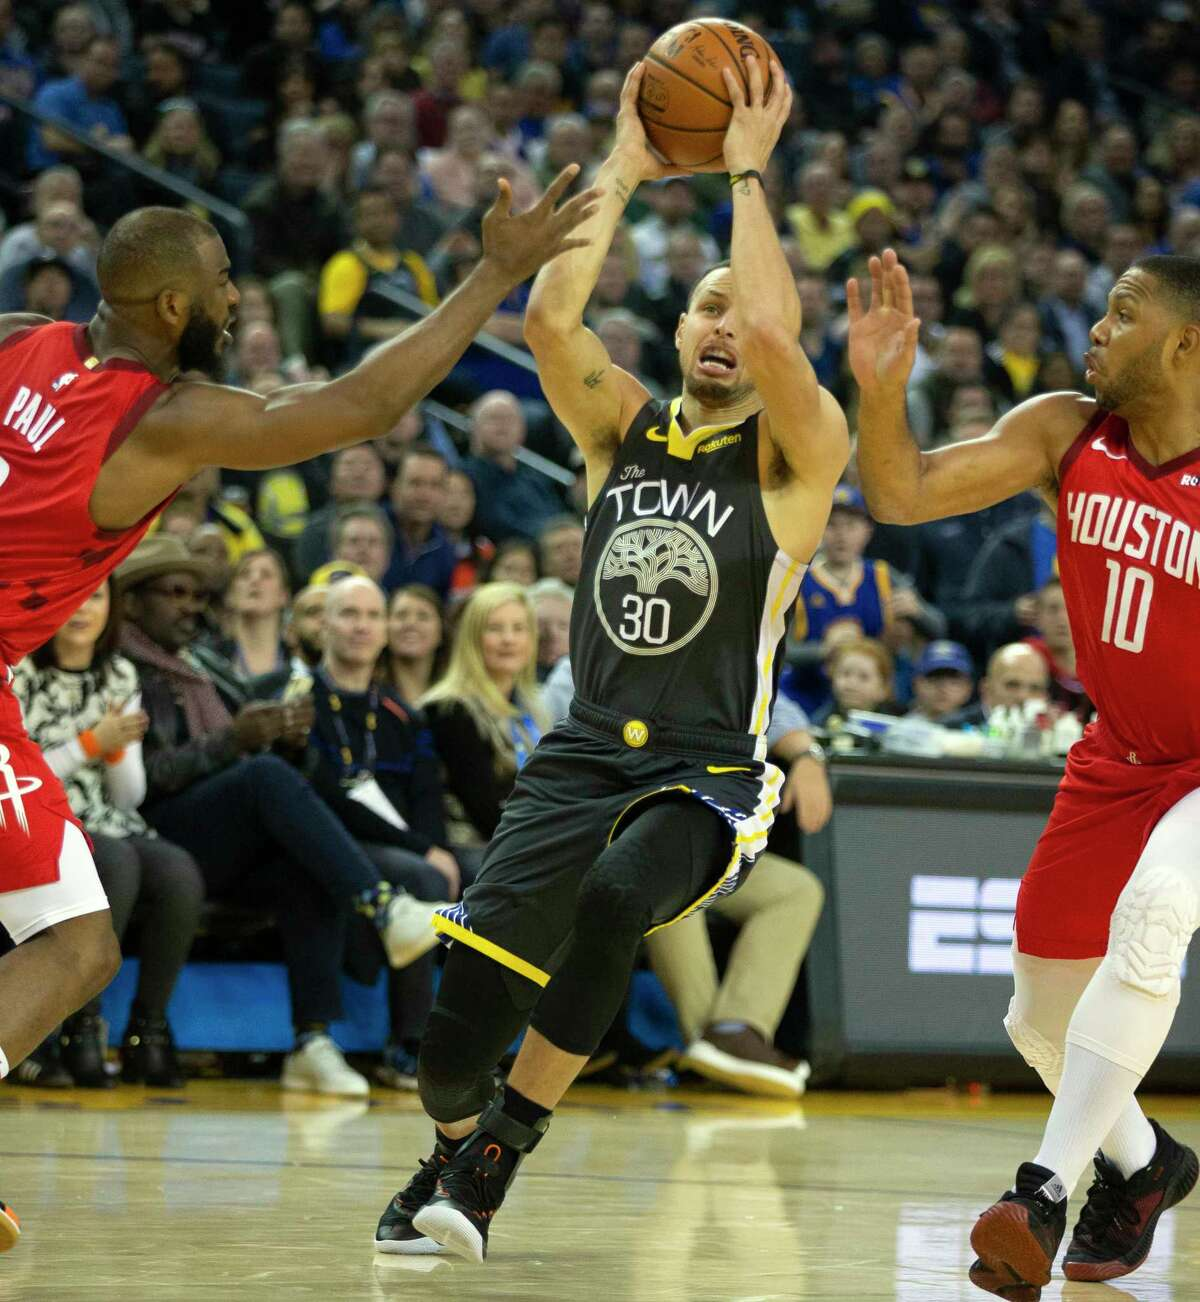 Golden State Warriors guard Stephen Curry (30) drives between Houston Rockets guard Chris Paul (3) and forward Eric Gordon (10) during the second quarter of an NBA basketball game on Saturday, Feb. 23, 2019 in Oakland, Calif.